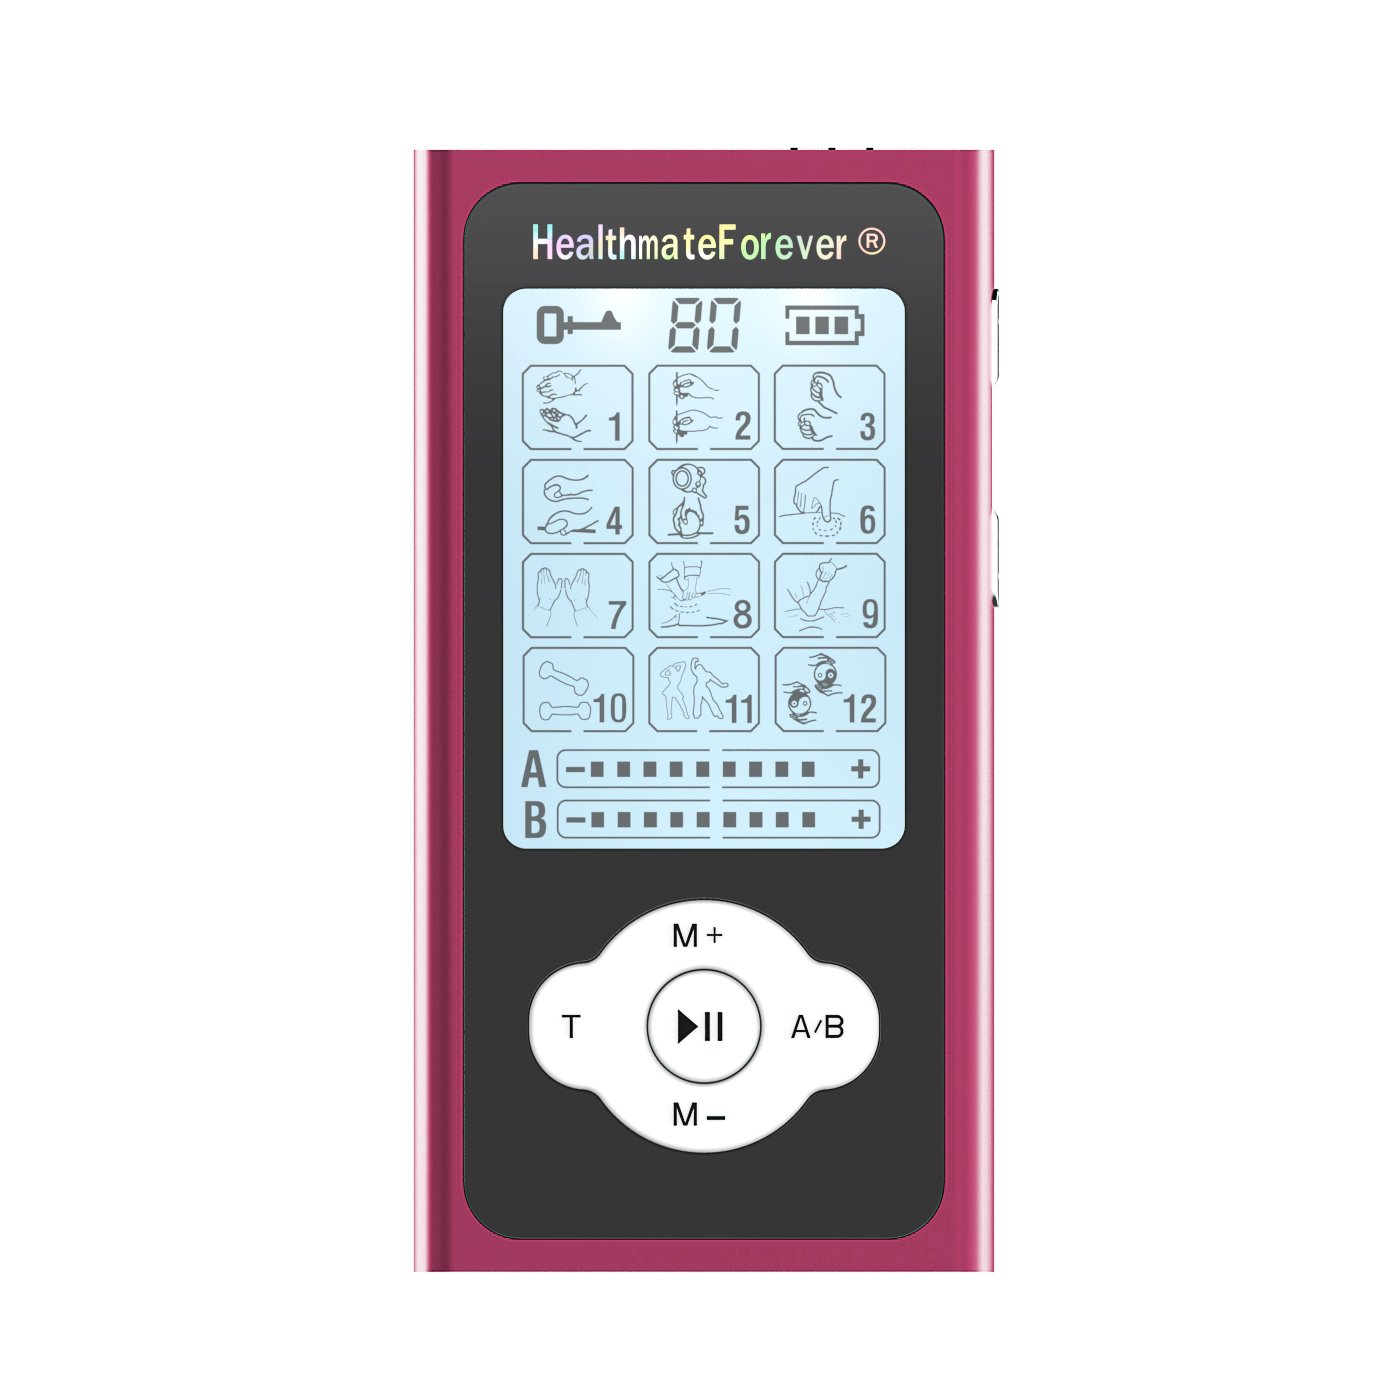 PRO12ABQ HealthmateForever TENS Unit Electrical Muscle Stimulator Red + 5 Pairs of Pads